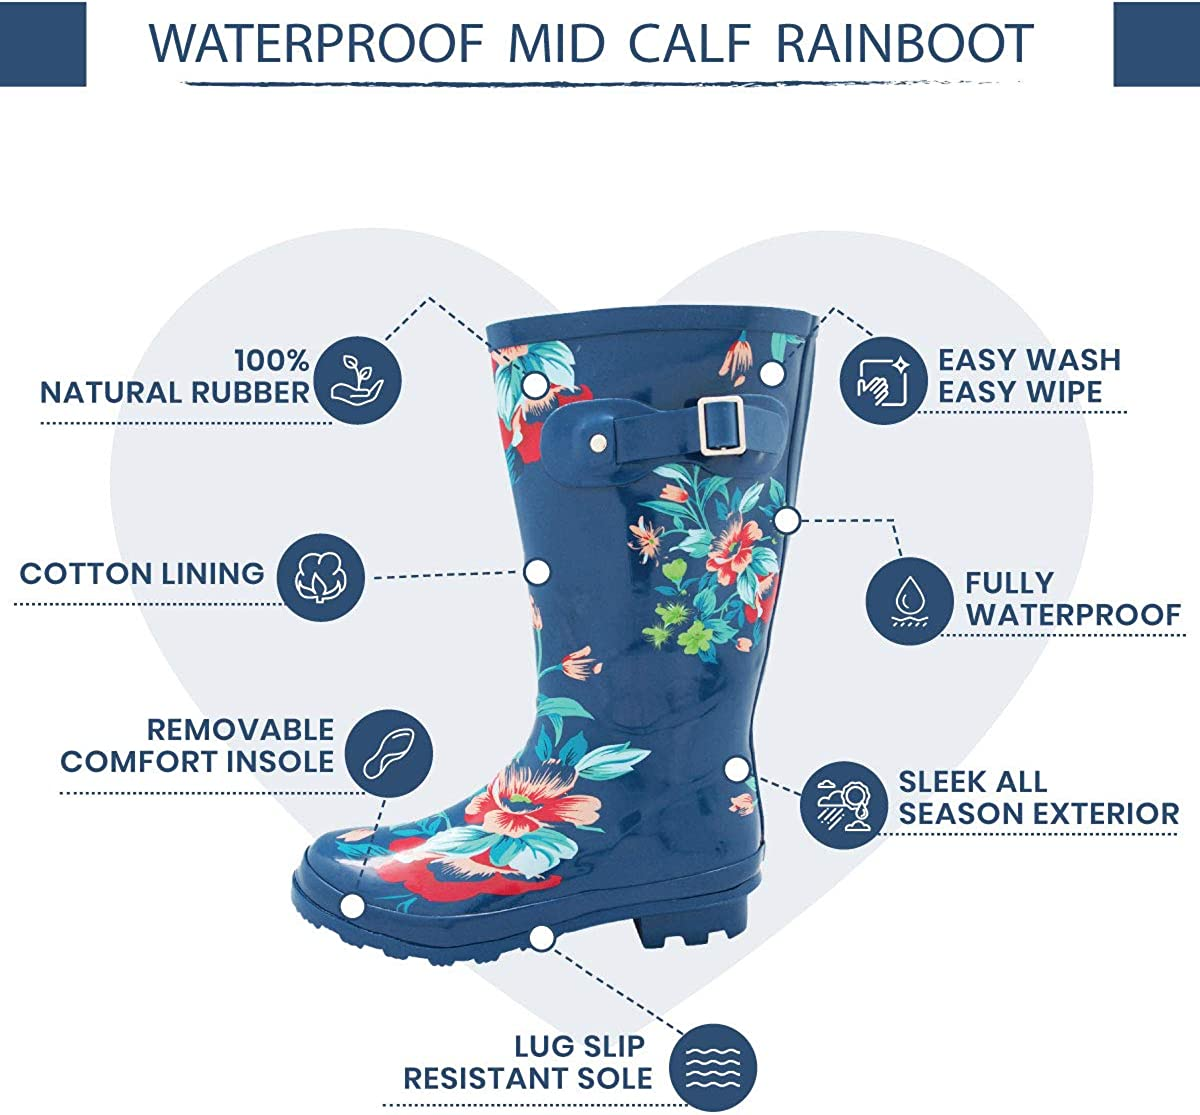 Solids and Prints NORTY Womens Hurricane Wellie Glossy /& Matte Waterproof Mid-Calf Rainboots